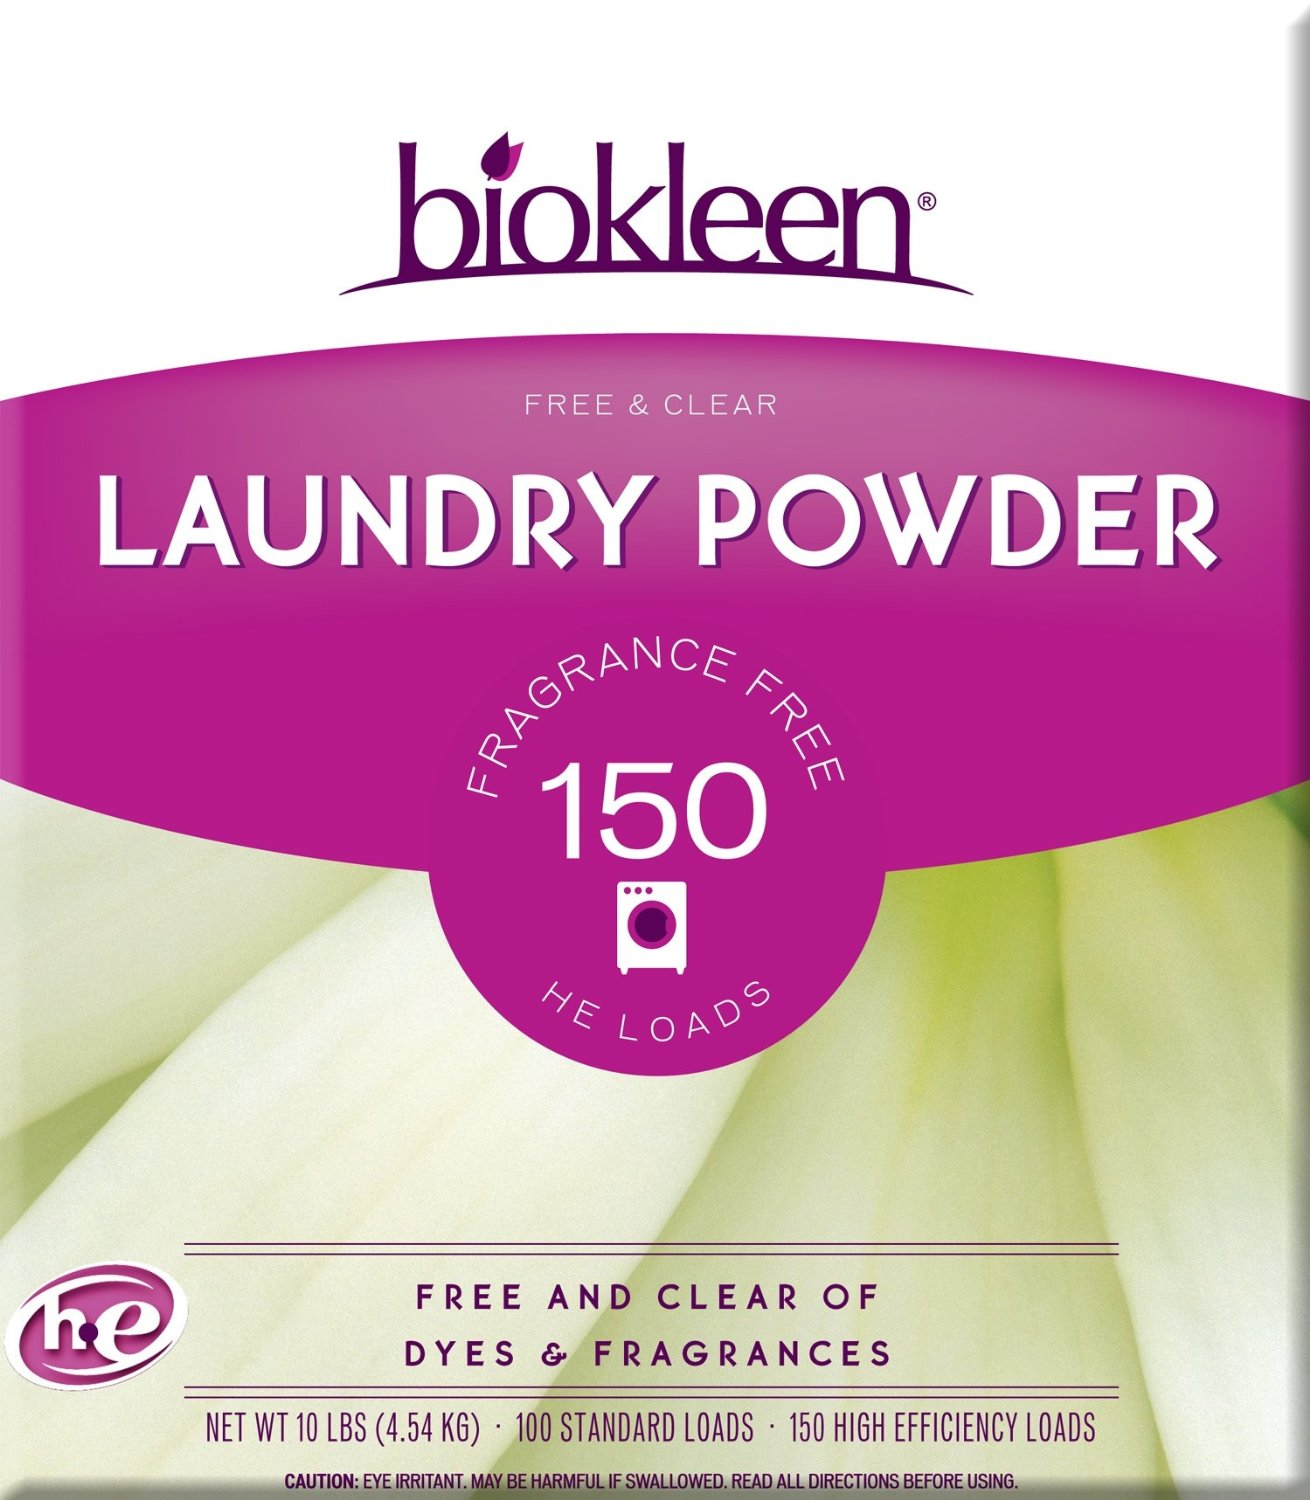 Biokleen Laundry Powder Free and Clear